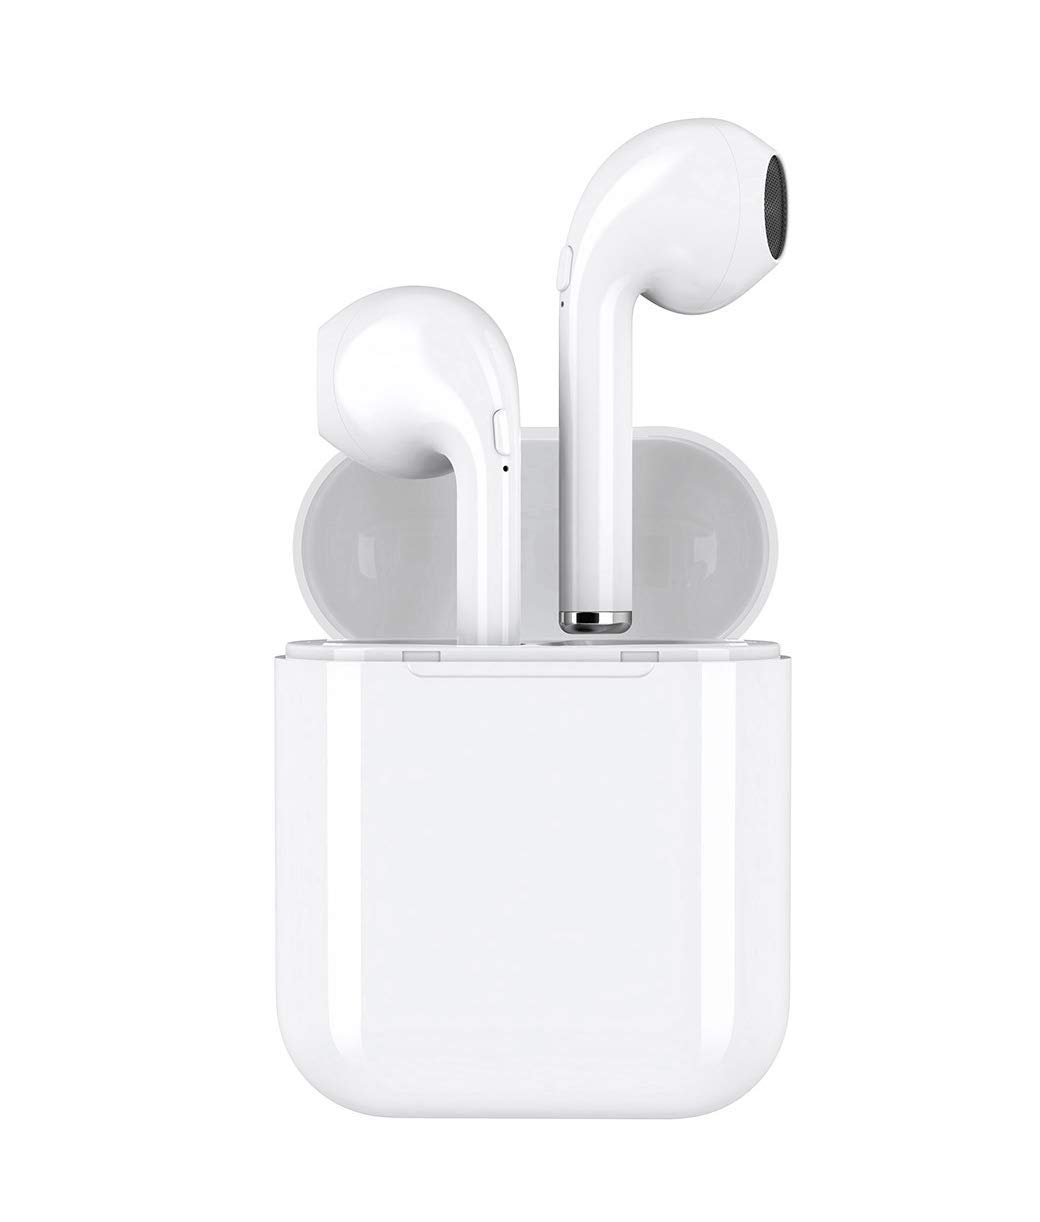 422adfbfa22 Headset Wireless Headset Bluetooth Headset, i8x with Headset Microphone and  Charging Box, in-Ear Mini Headset, Compatible with iPhone X 8 7 Plus Plus  ...